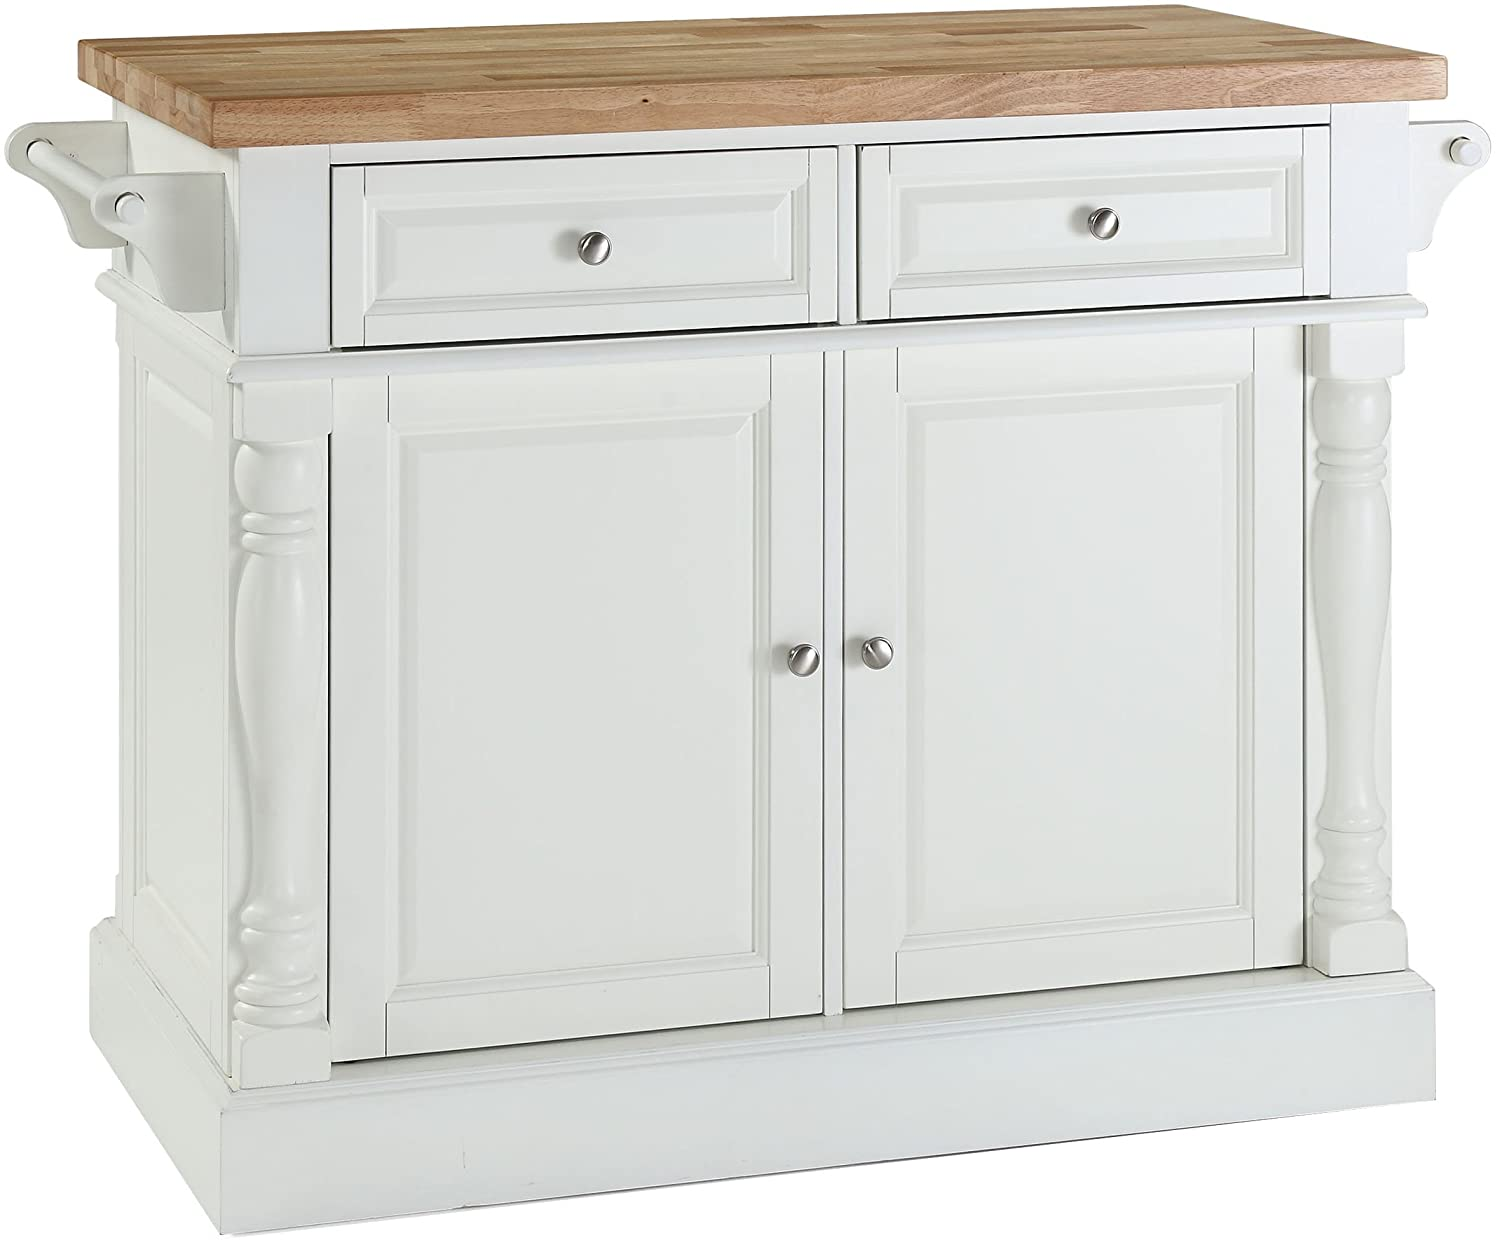 Crosley Furniture Kitchen Island with Butcher Block Top - White